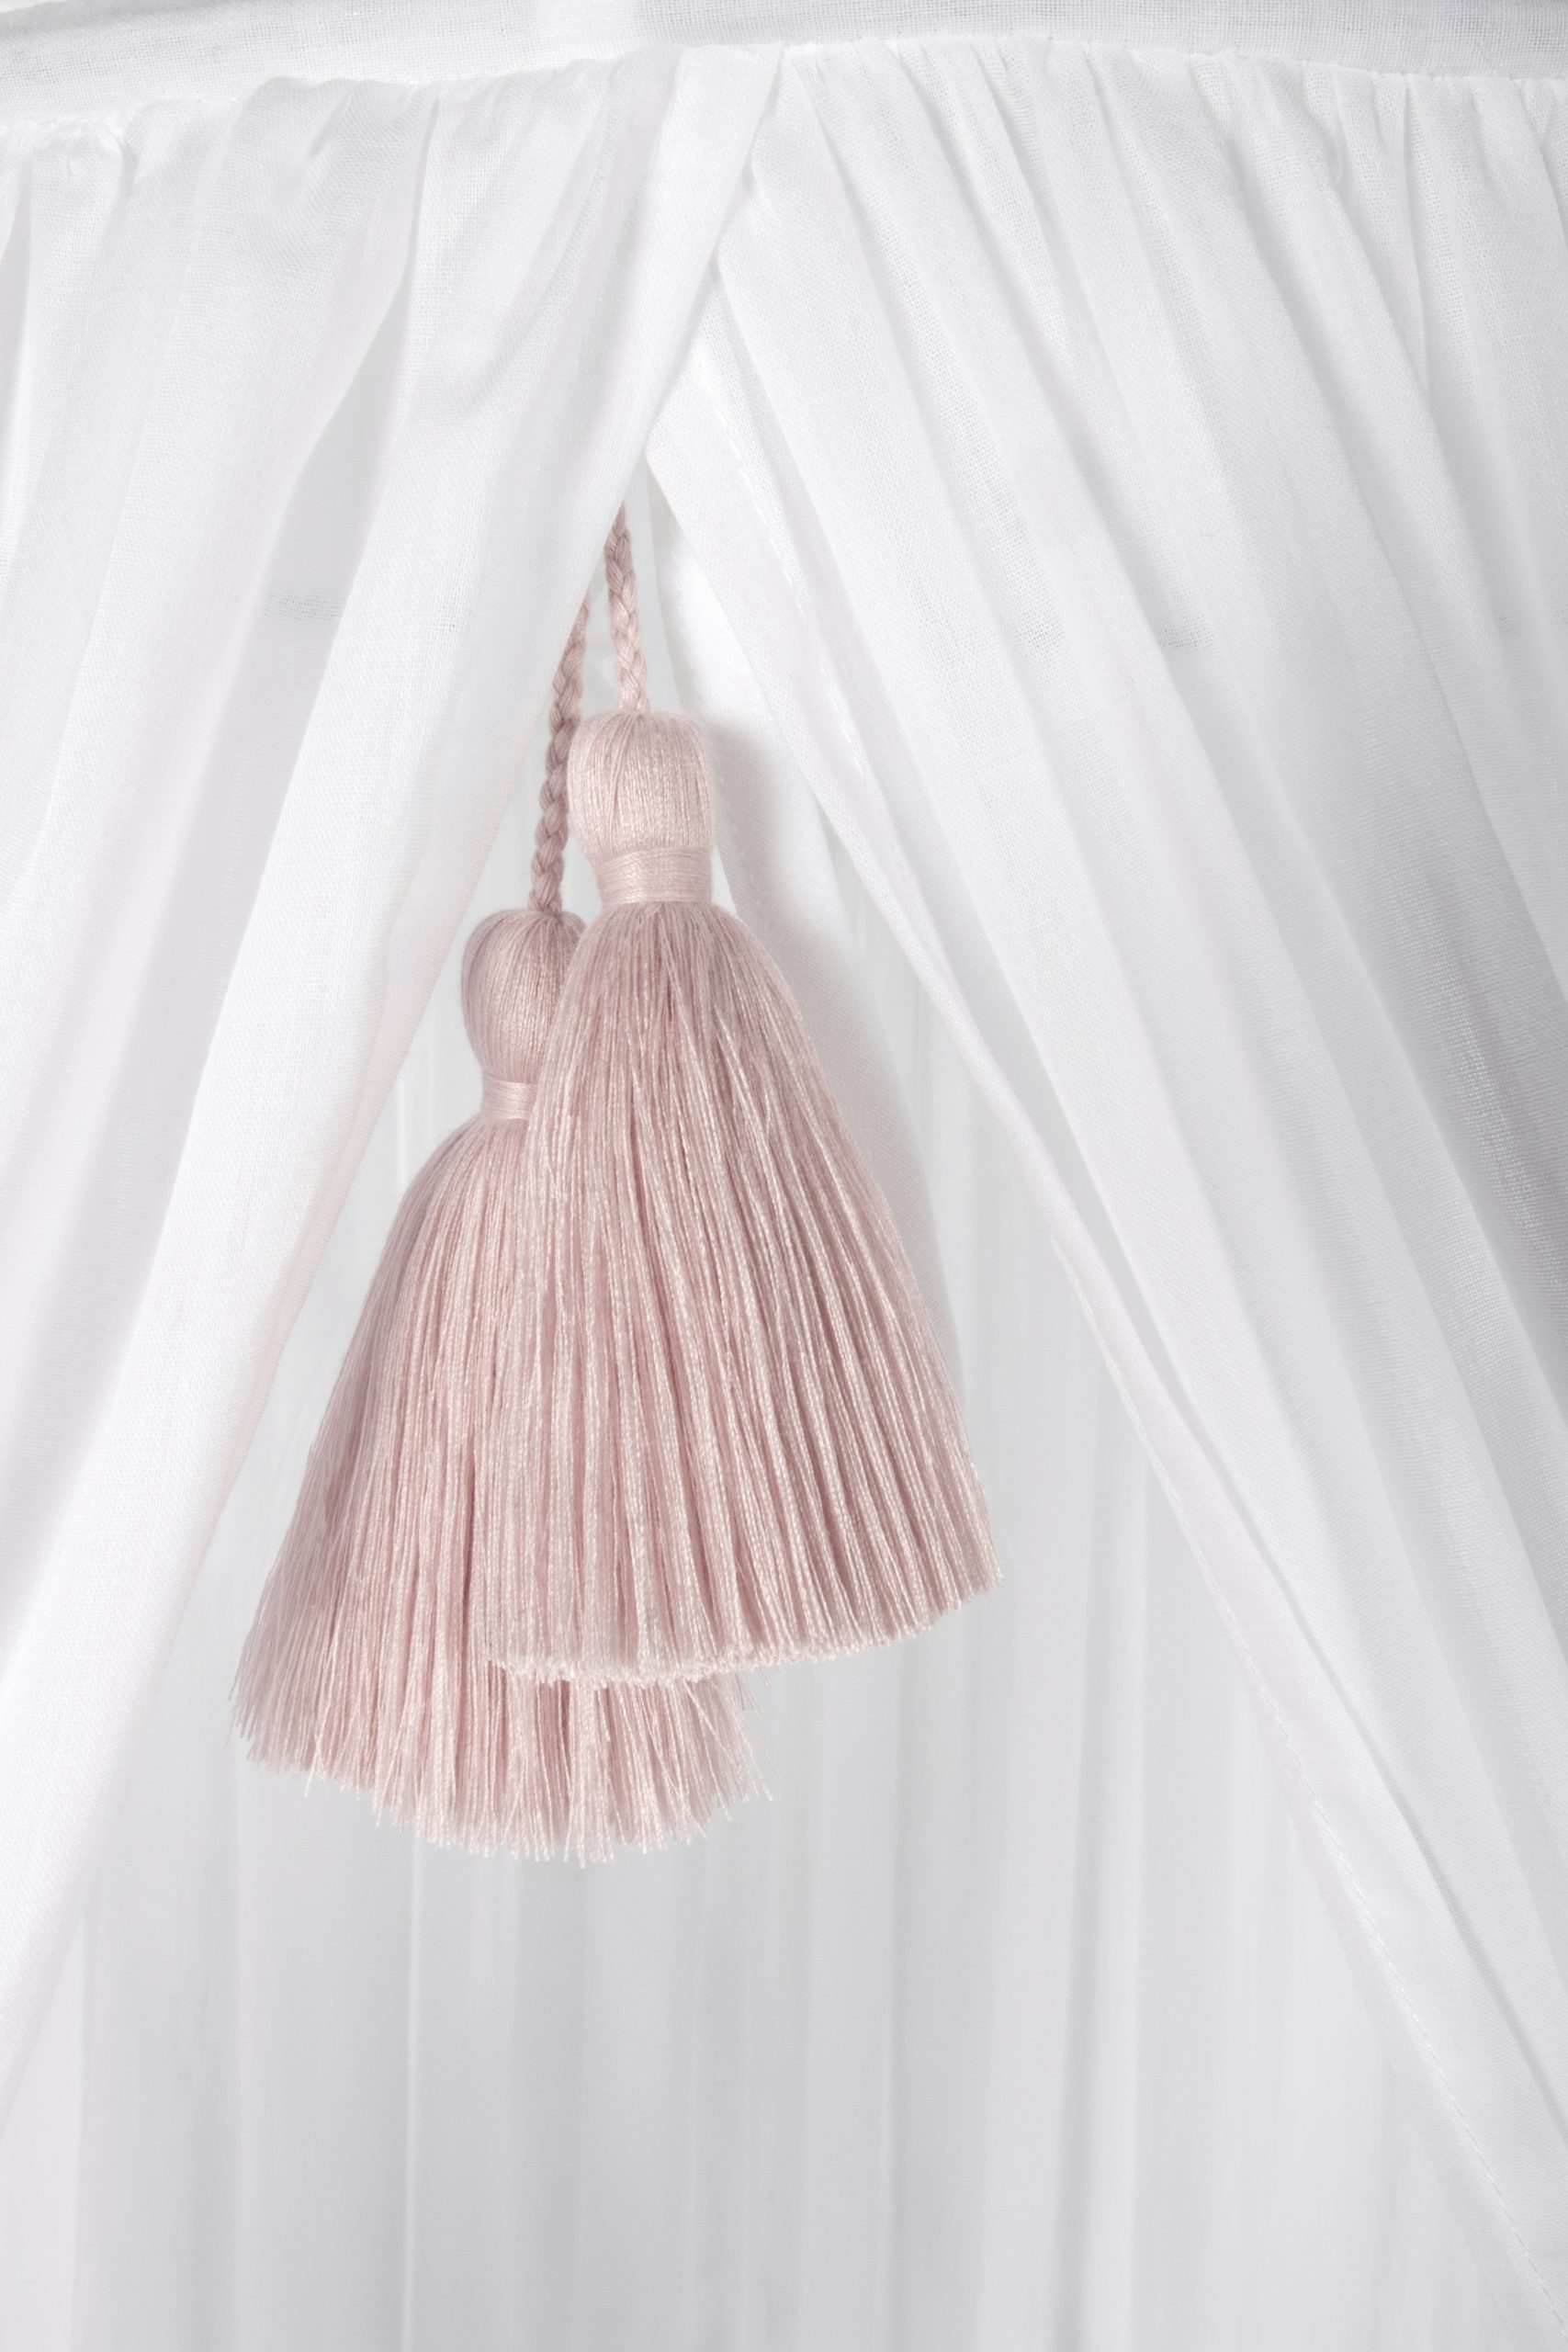 CNP01 Canopy with pink tassel1